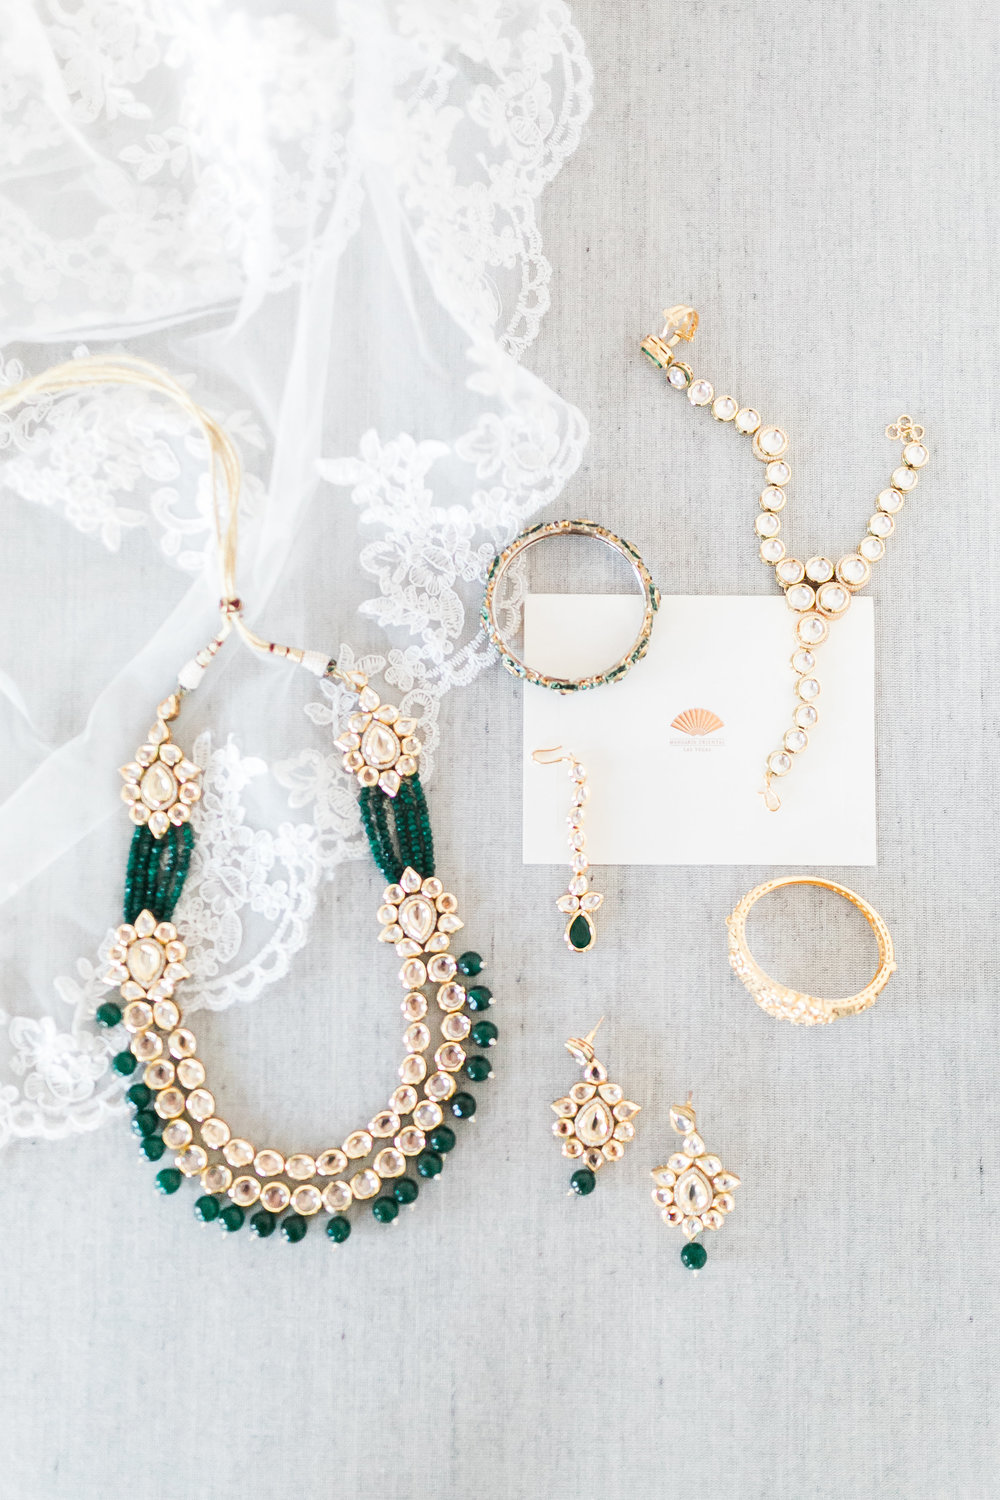 The family adorned the bride with gold and green indian wedding jewelry.  These pieces are opulent jewels that will be passed on and worn for years.  Las Vegas Wedding Planner Andrea Eppolito shares this multicultural wedding.  Photo by J.Anne Photography.